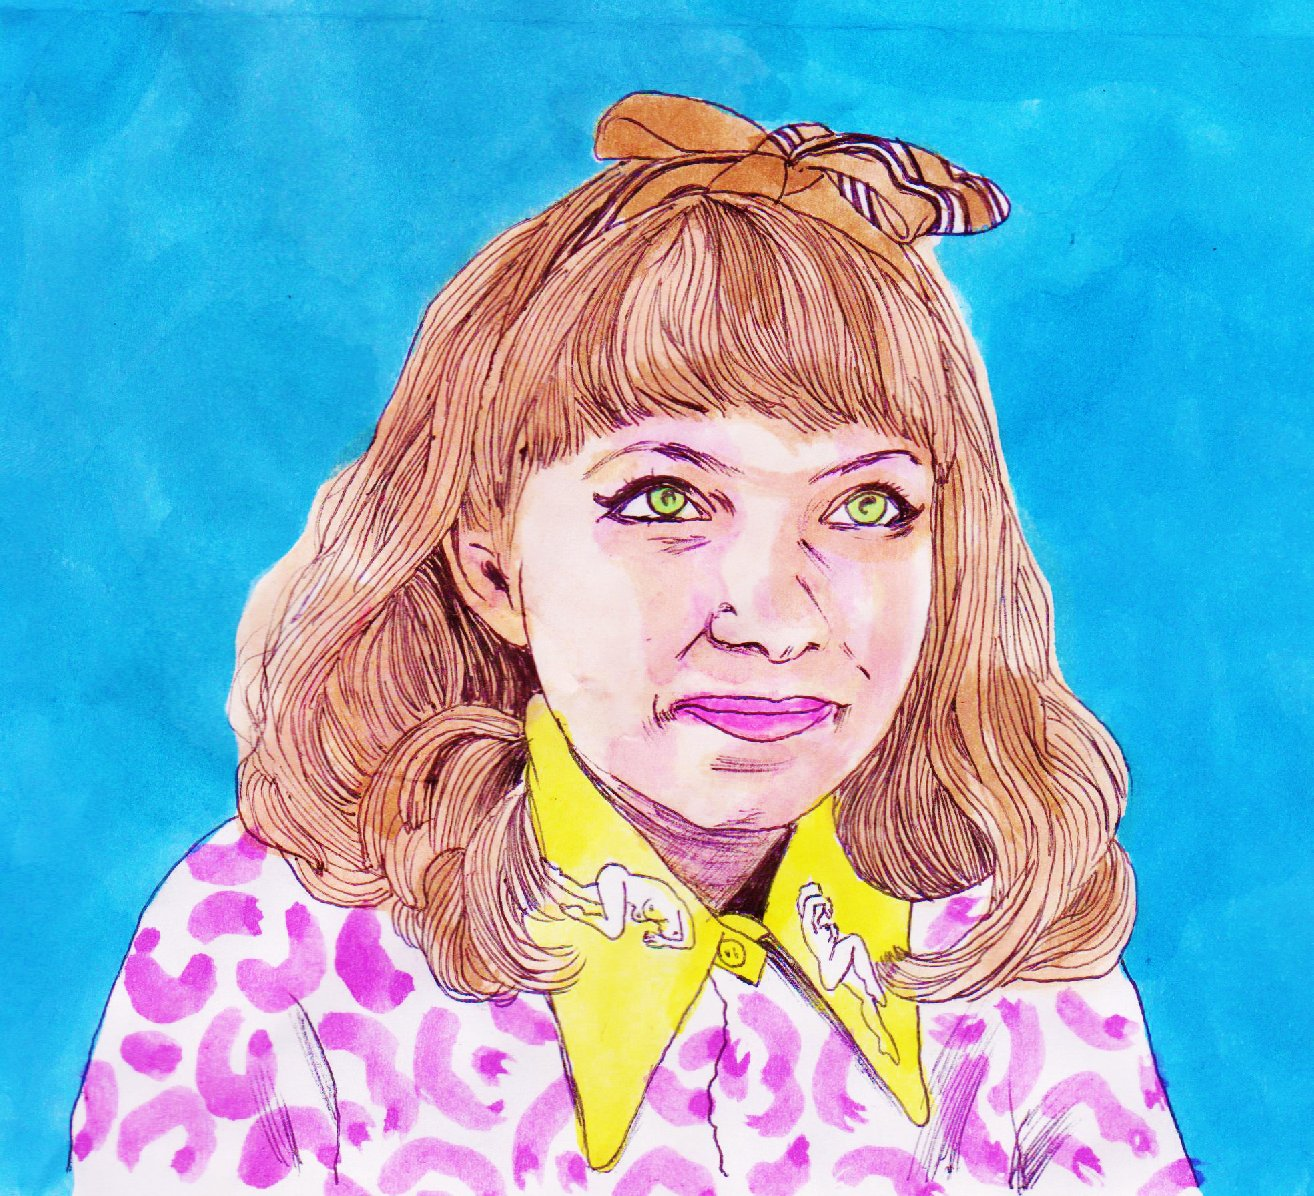 Tavi Gevinson by Erica Parrott, Wiki Commons